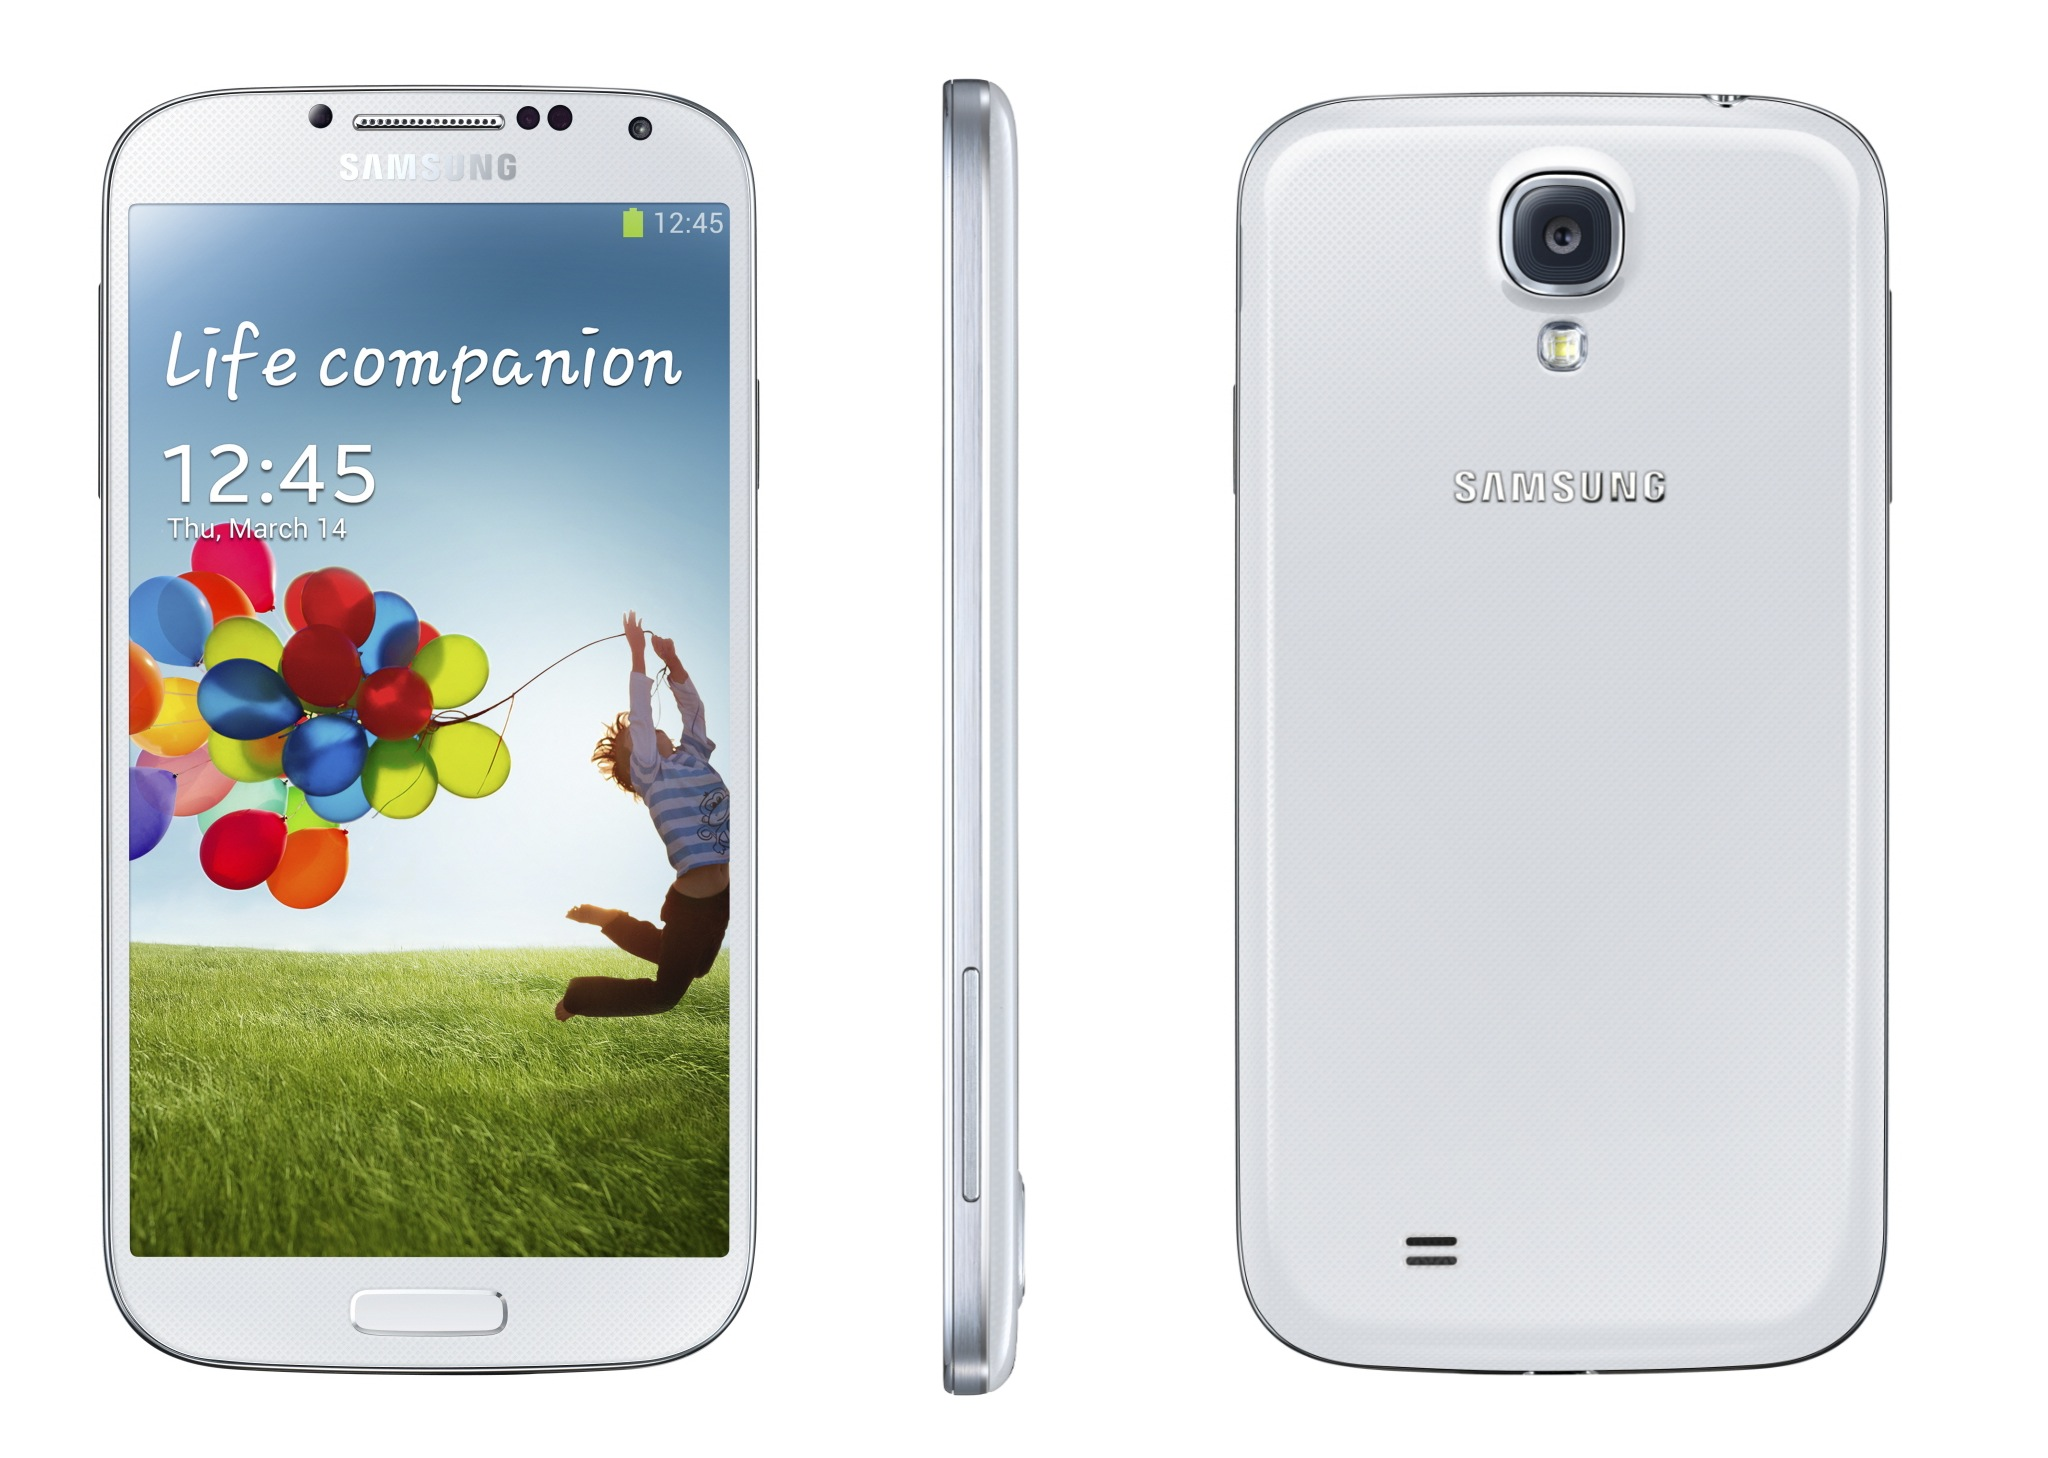 Samsung Galaxy S 4 (white, three up, front, profile, back)